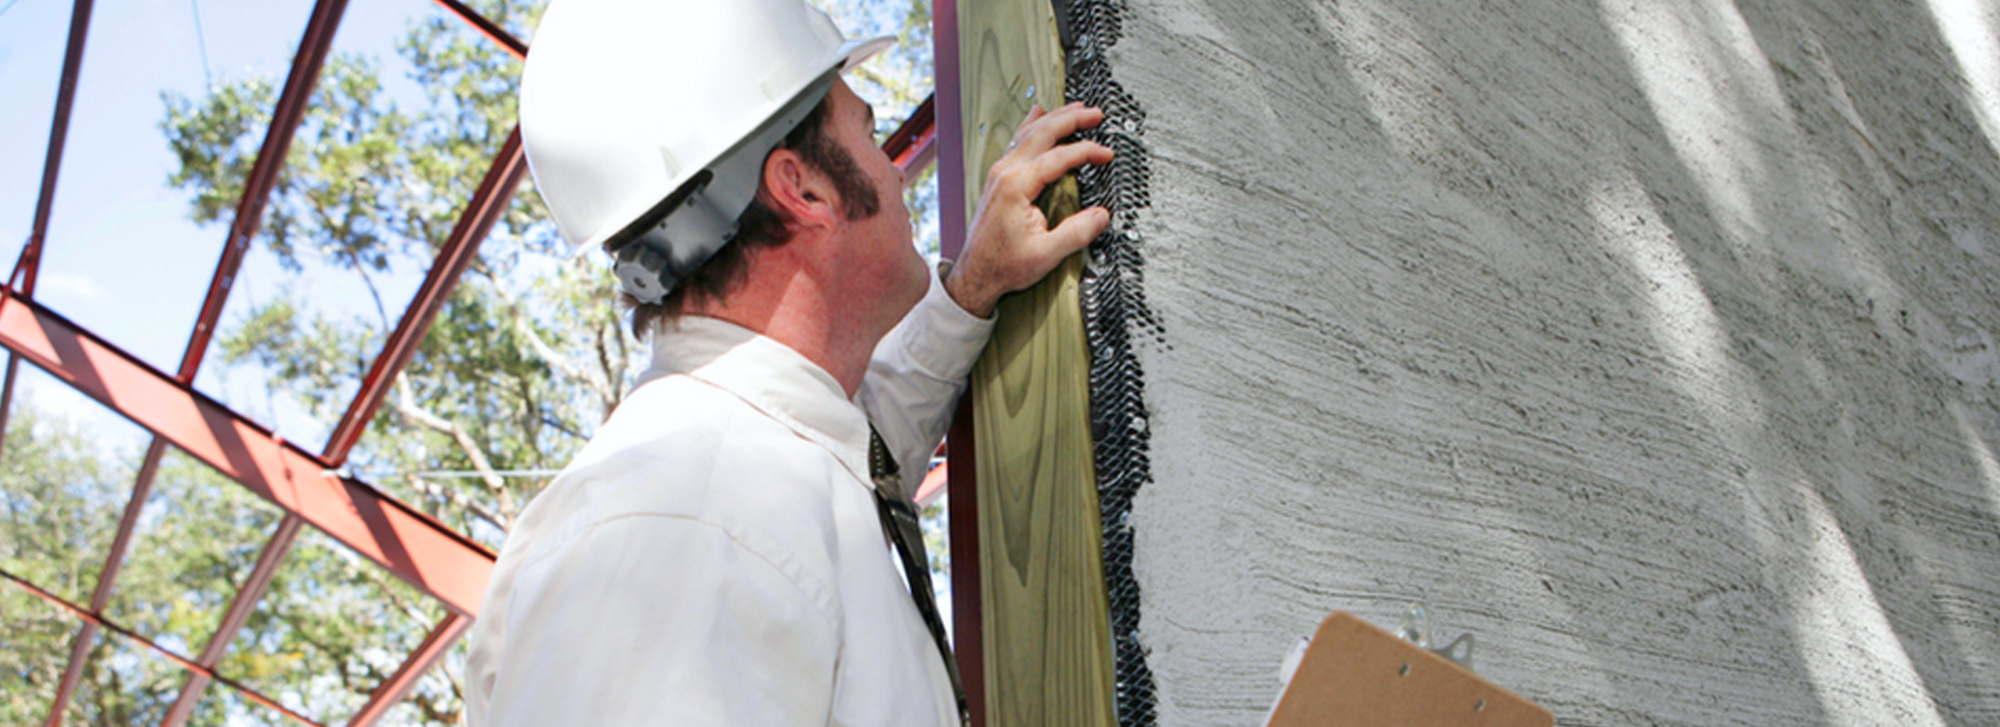 Pest Inspections